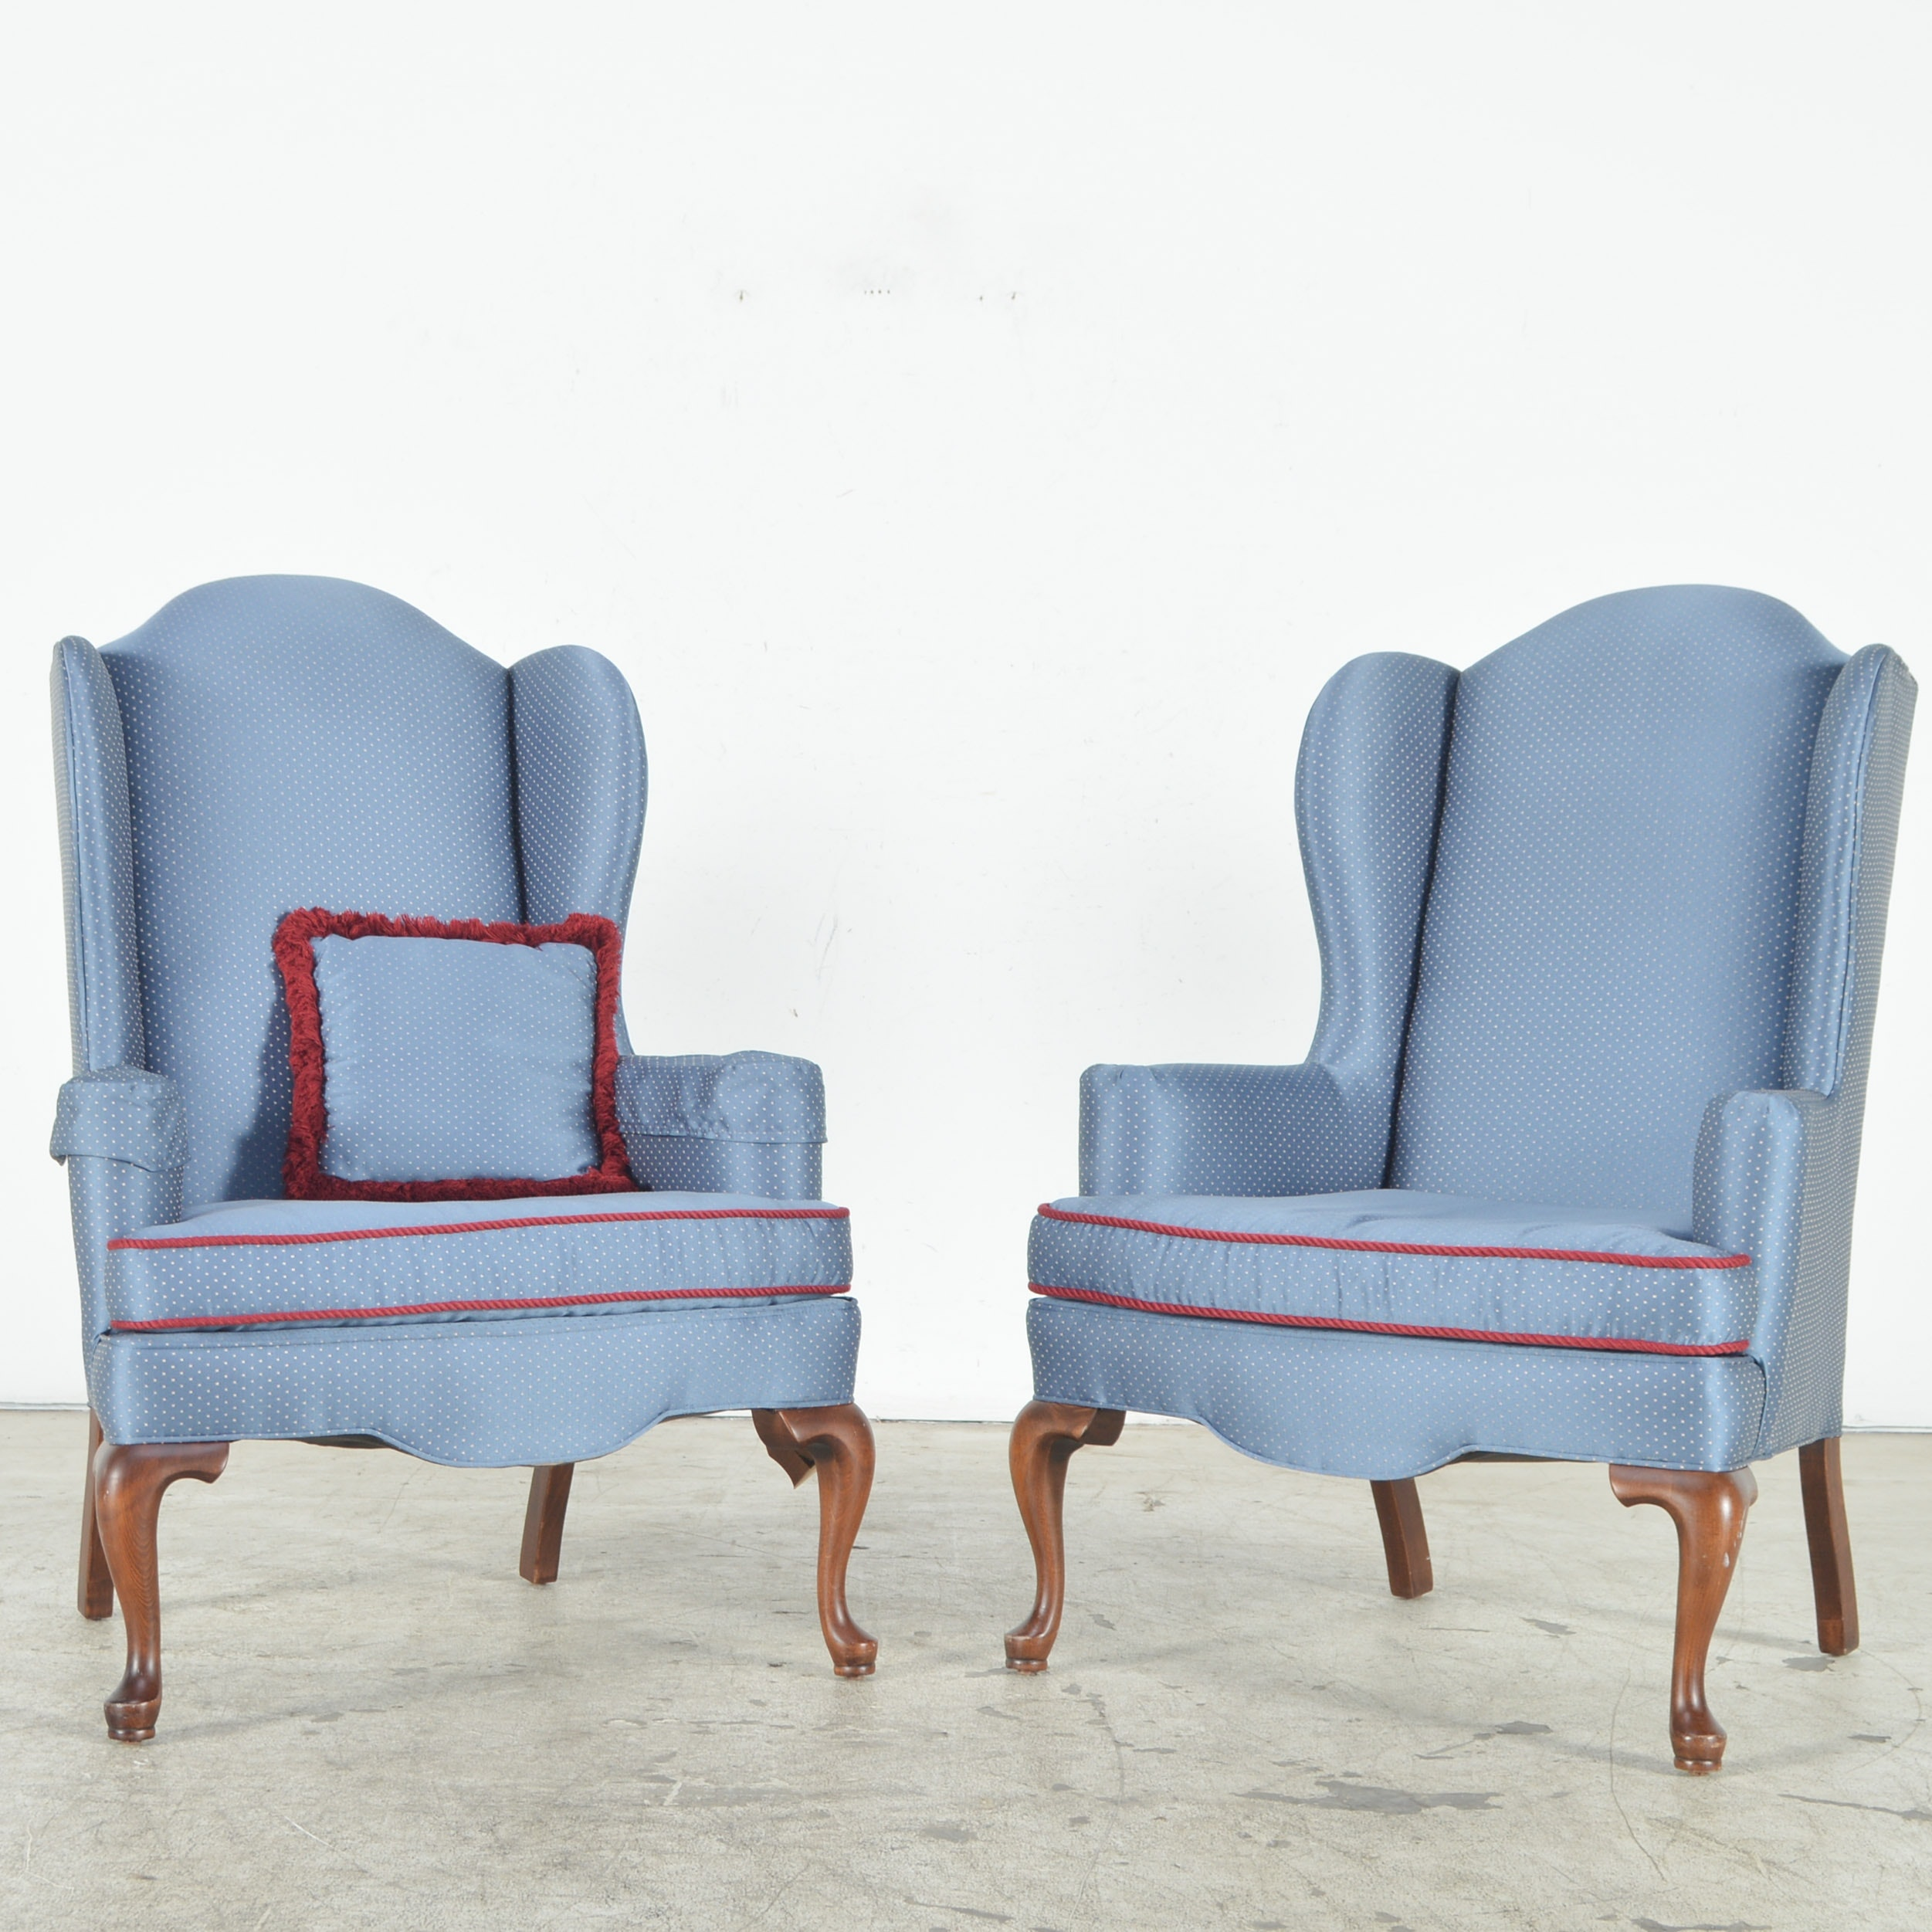 Ethan Allen Blue Upholstered Wingback Chairs ...